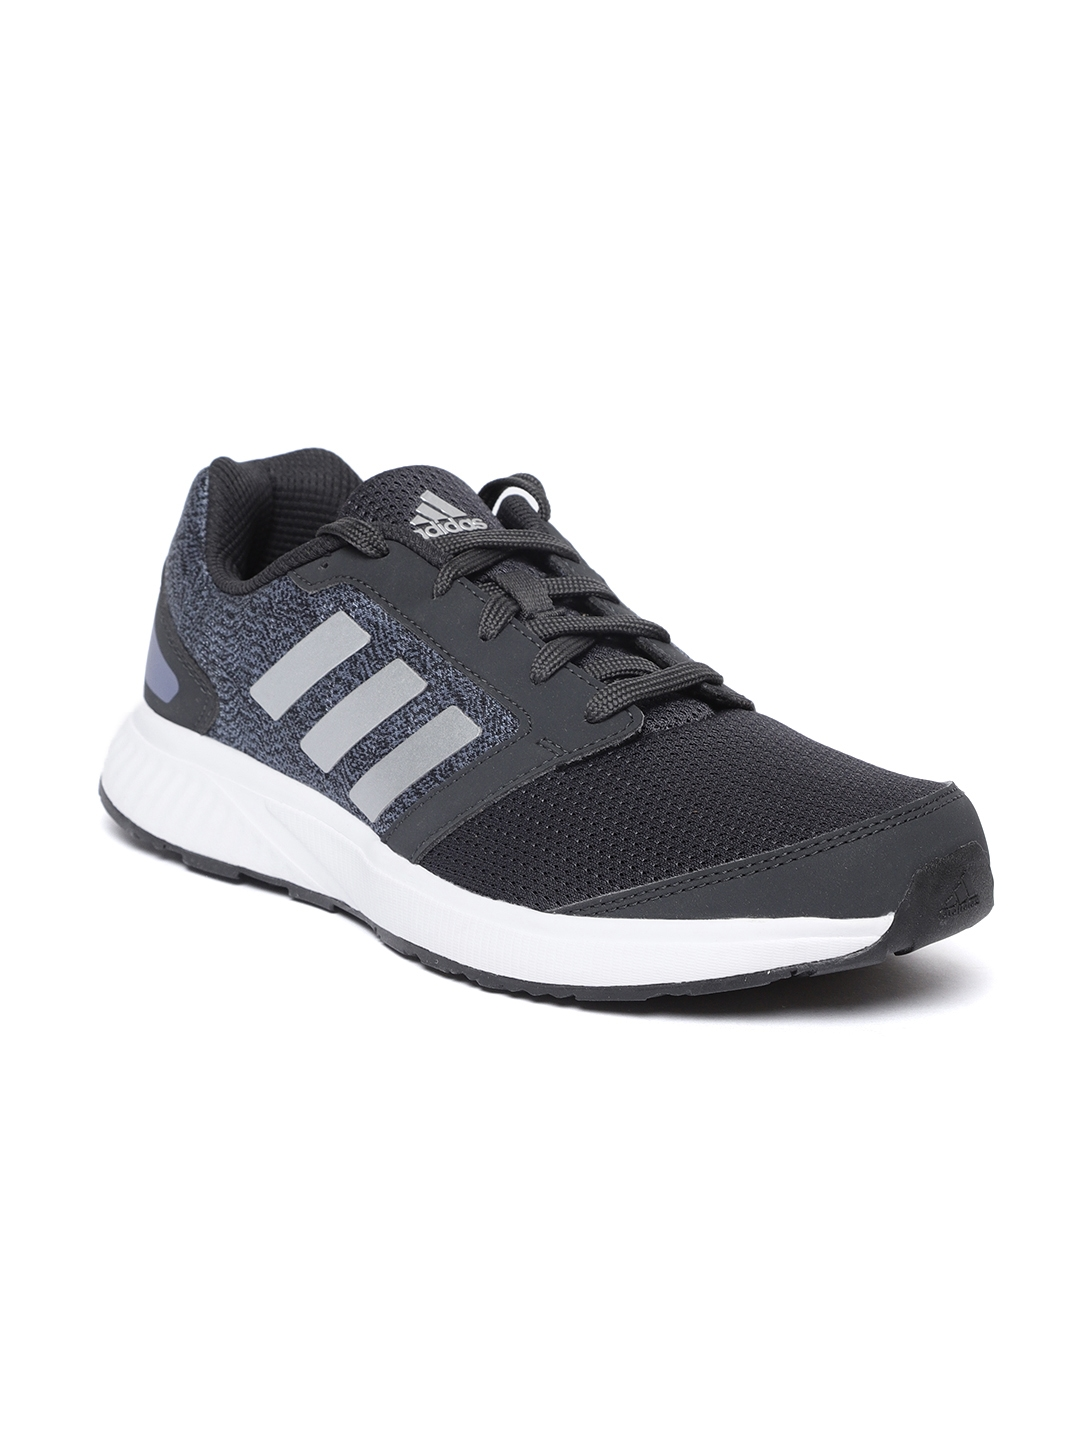 5e707fcfdc Buy ADIDAS Men Charcoal Grey ADI Pacer 4 Running Shoes - Sports ...